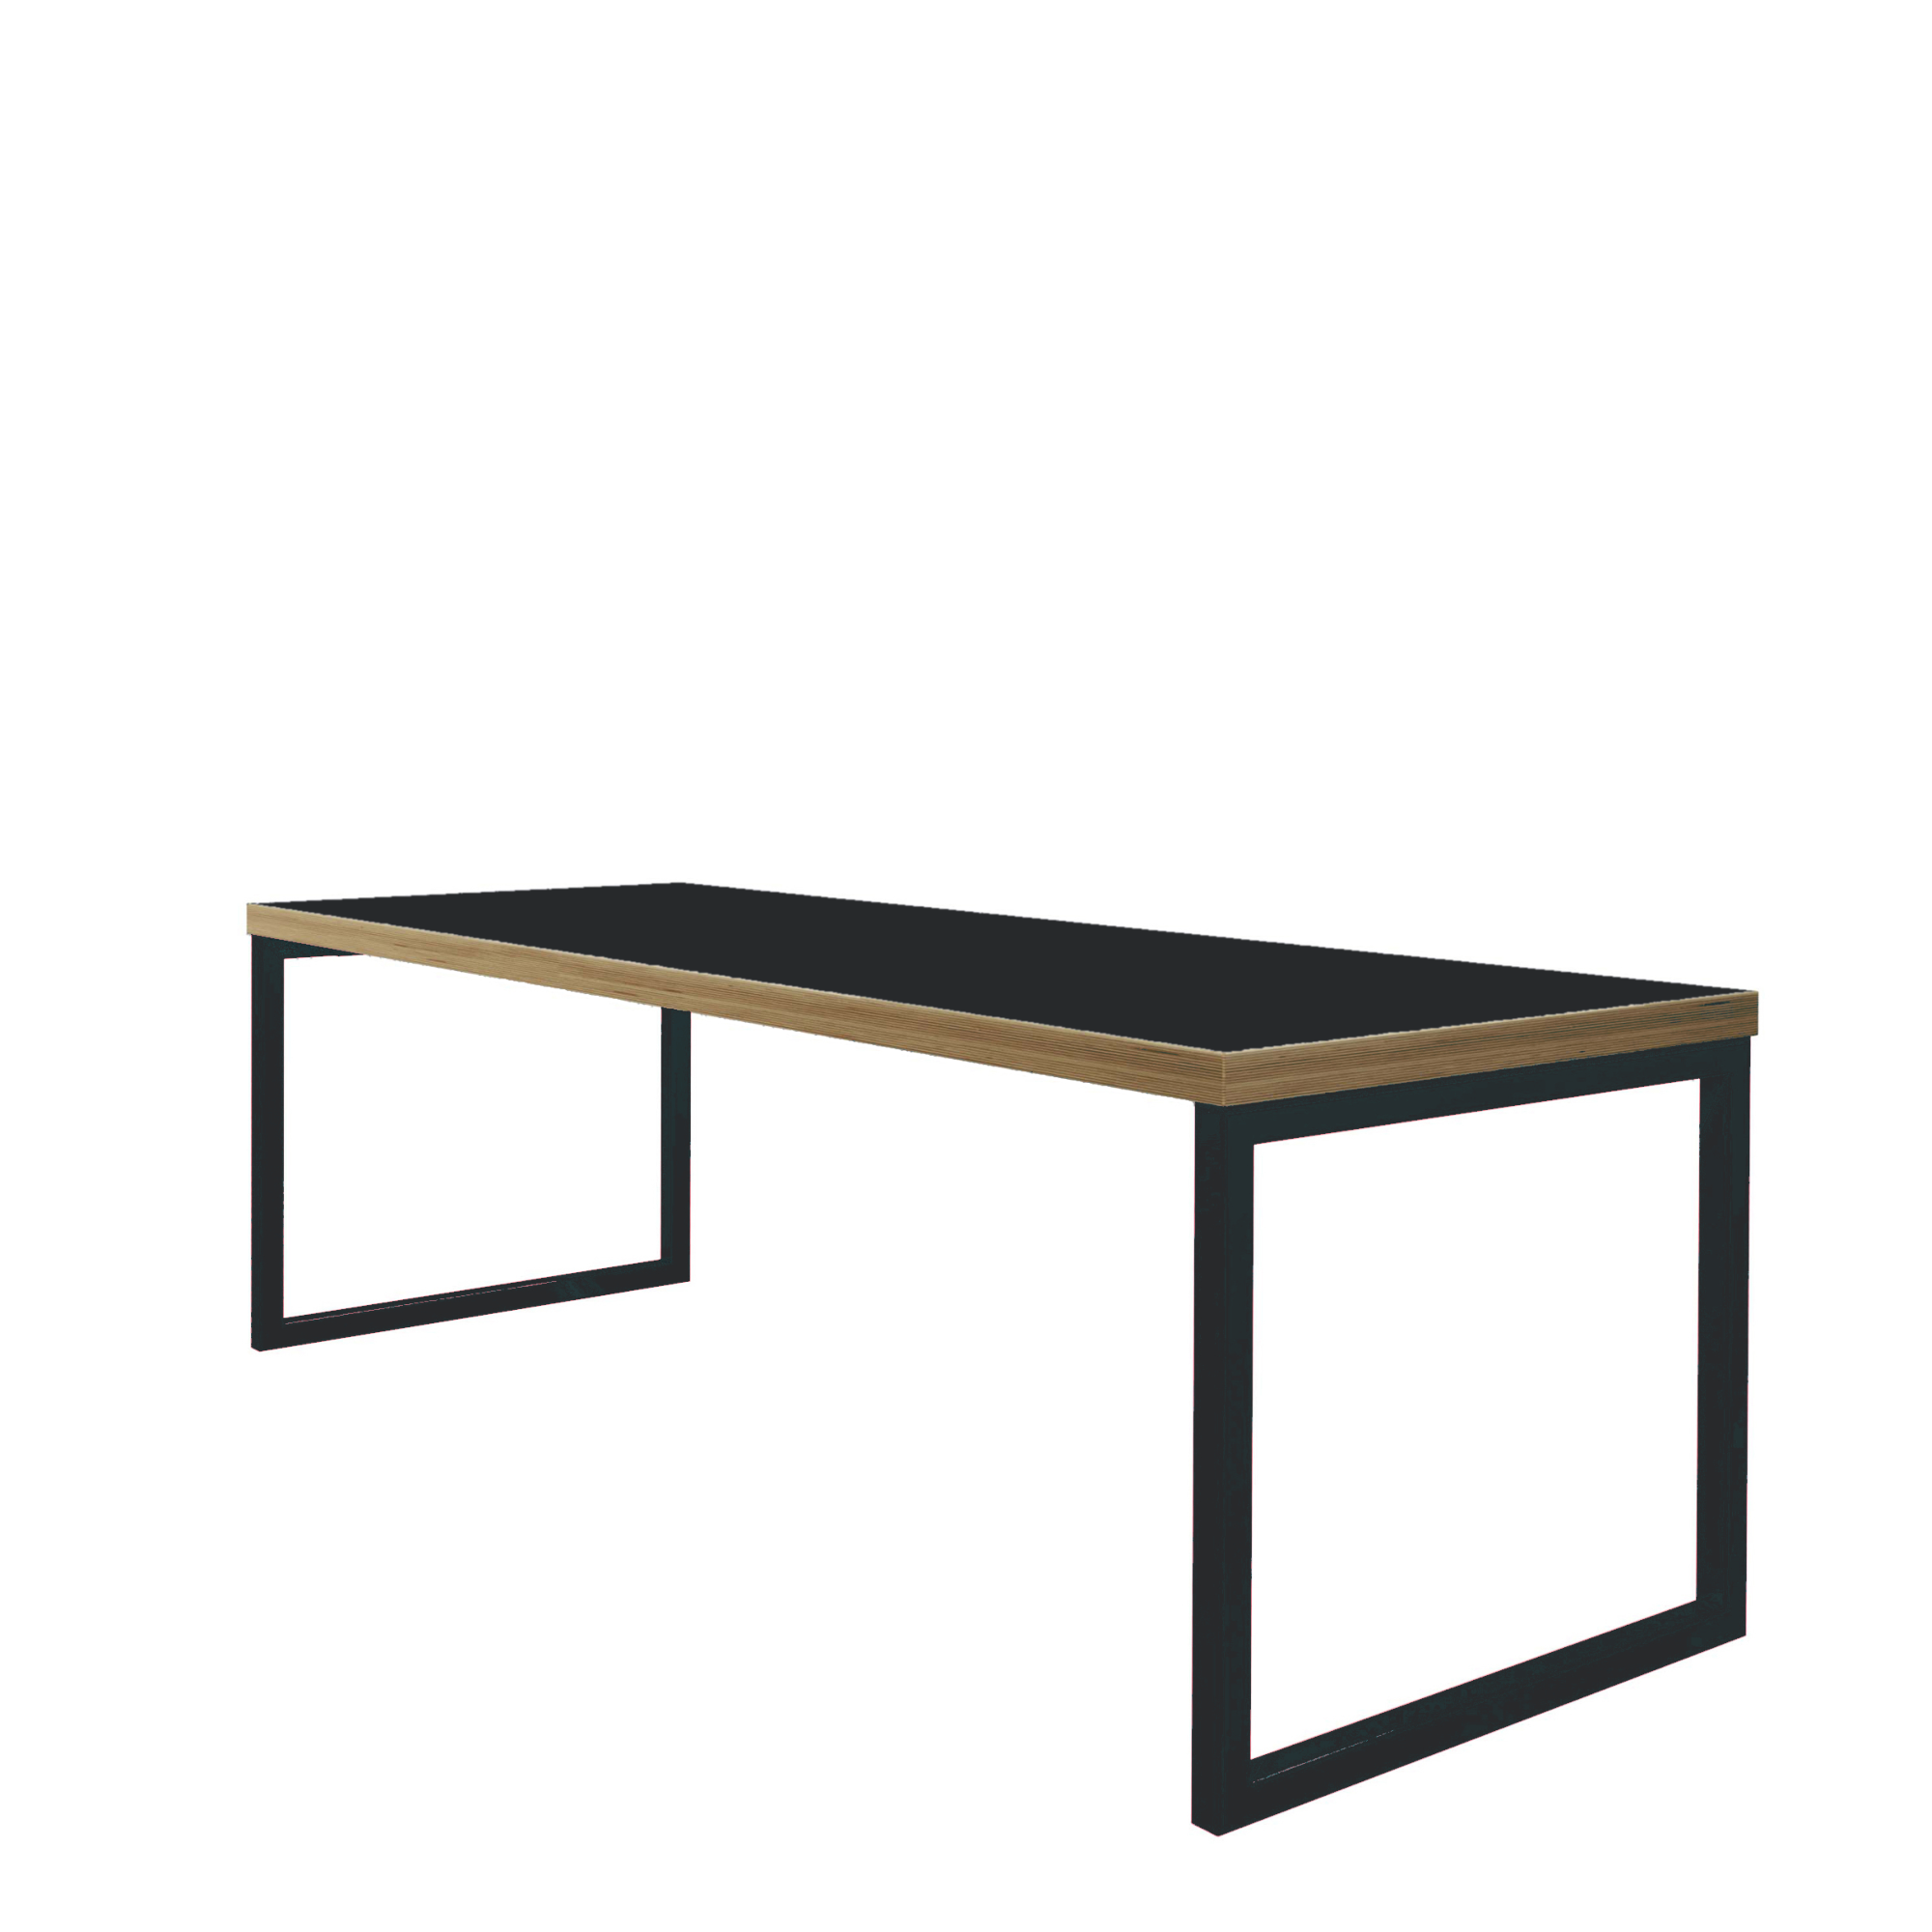 ORN Axiom Café Bench Table Black with Graphite Black 9011 Frame